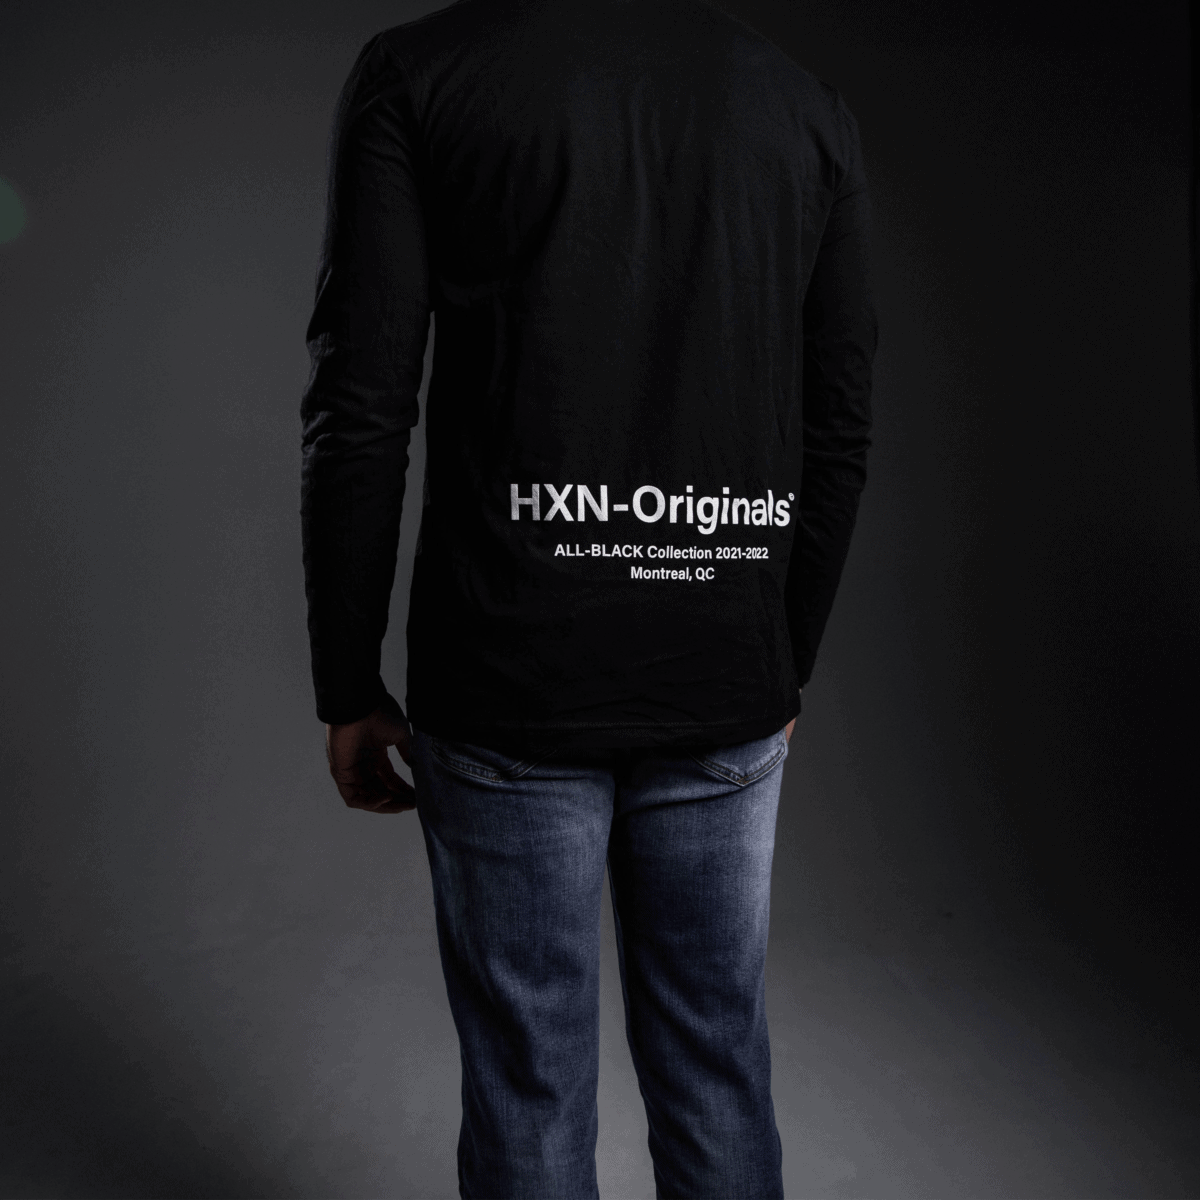 fresh out the factory long sleeve back hxn media